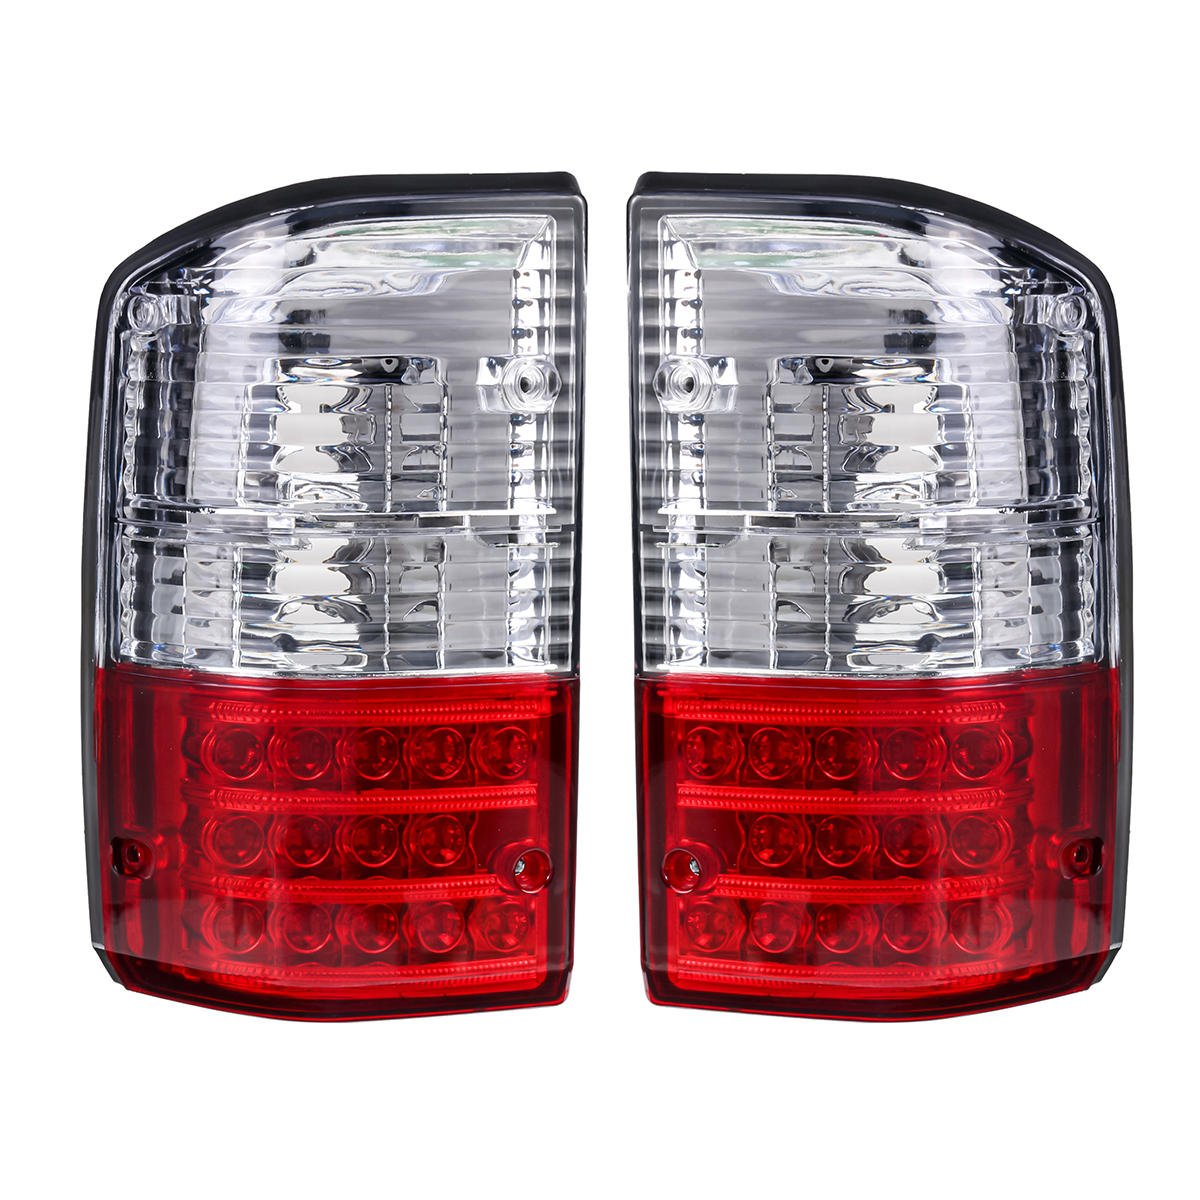 Car Left/Right Rear Tail Turn Signal Light Brake Lamp For Nissan Patrol GQ 1988-1997 Series 1 2